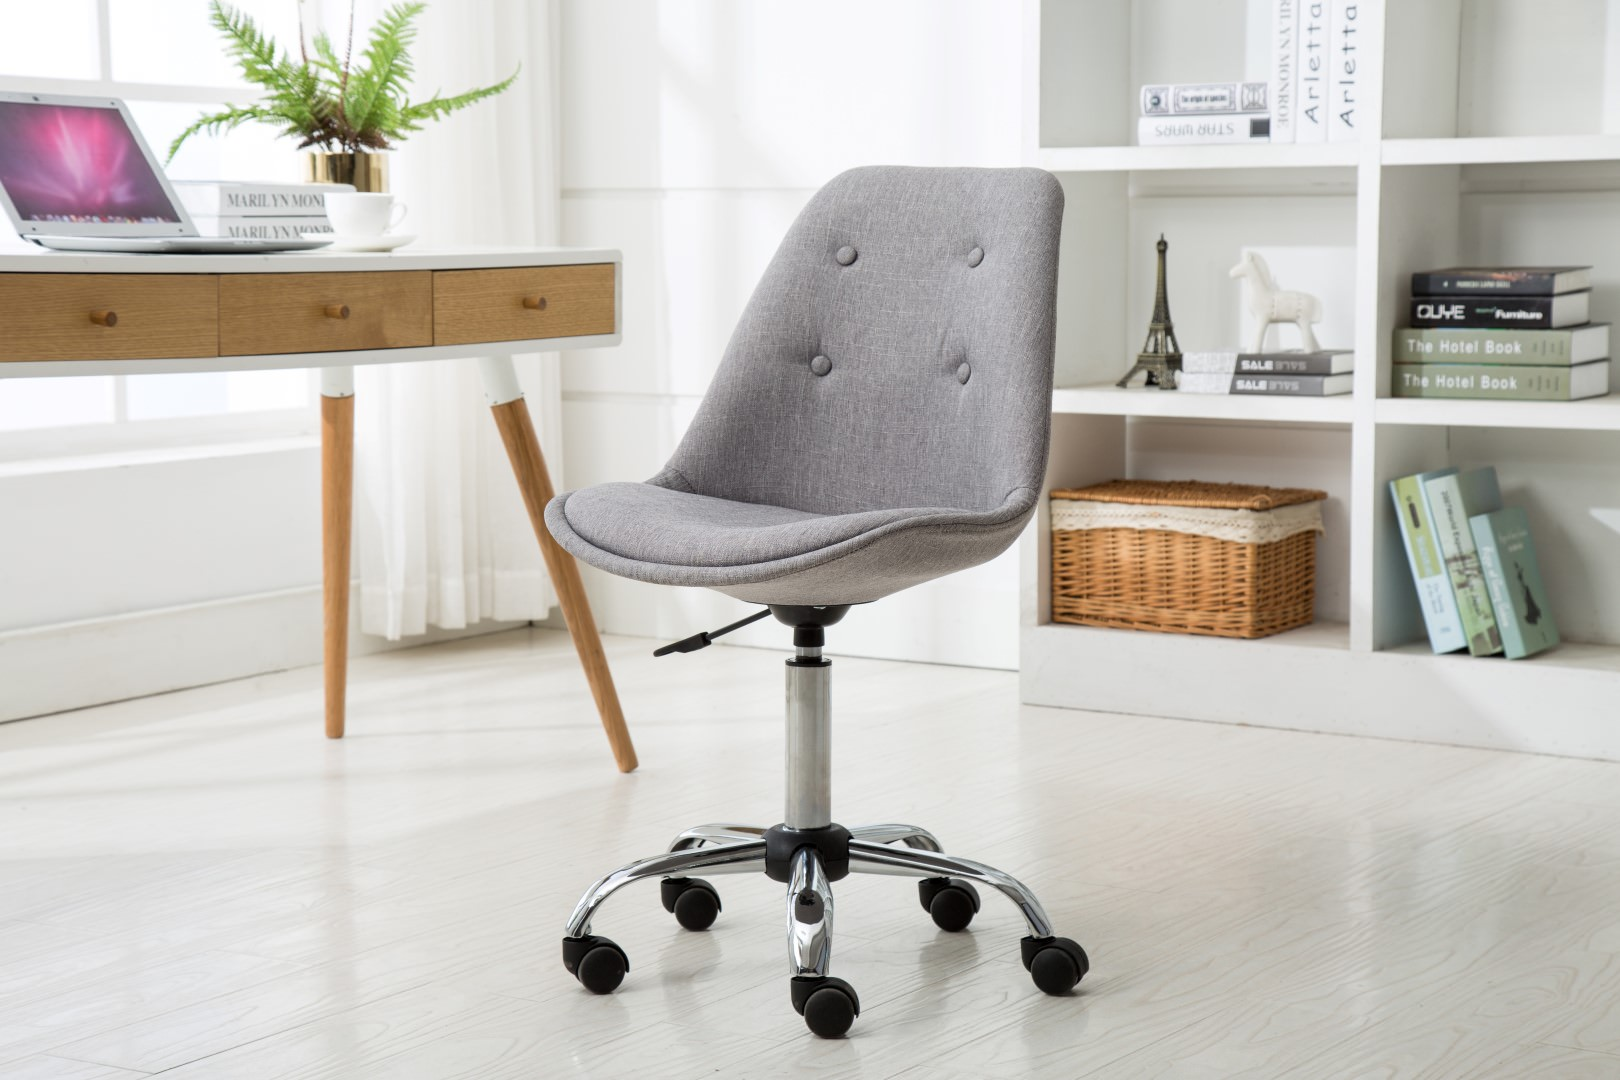 Porthos Home Office Chair With Caster Wheels, Height Adjustable, Chrome  Metal Base, Great For Leisure, Office Seating Or A Casual Gaming Chair Office  Chairs ...